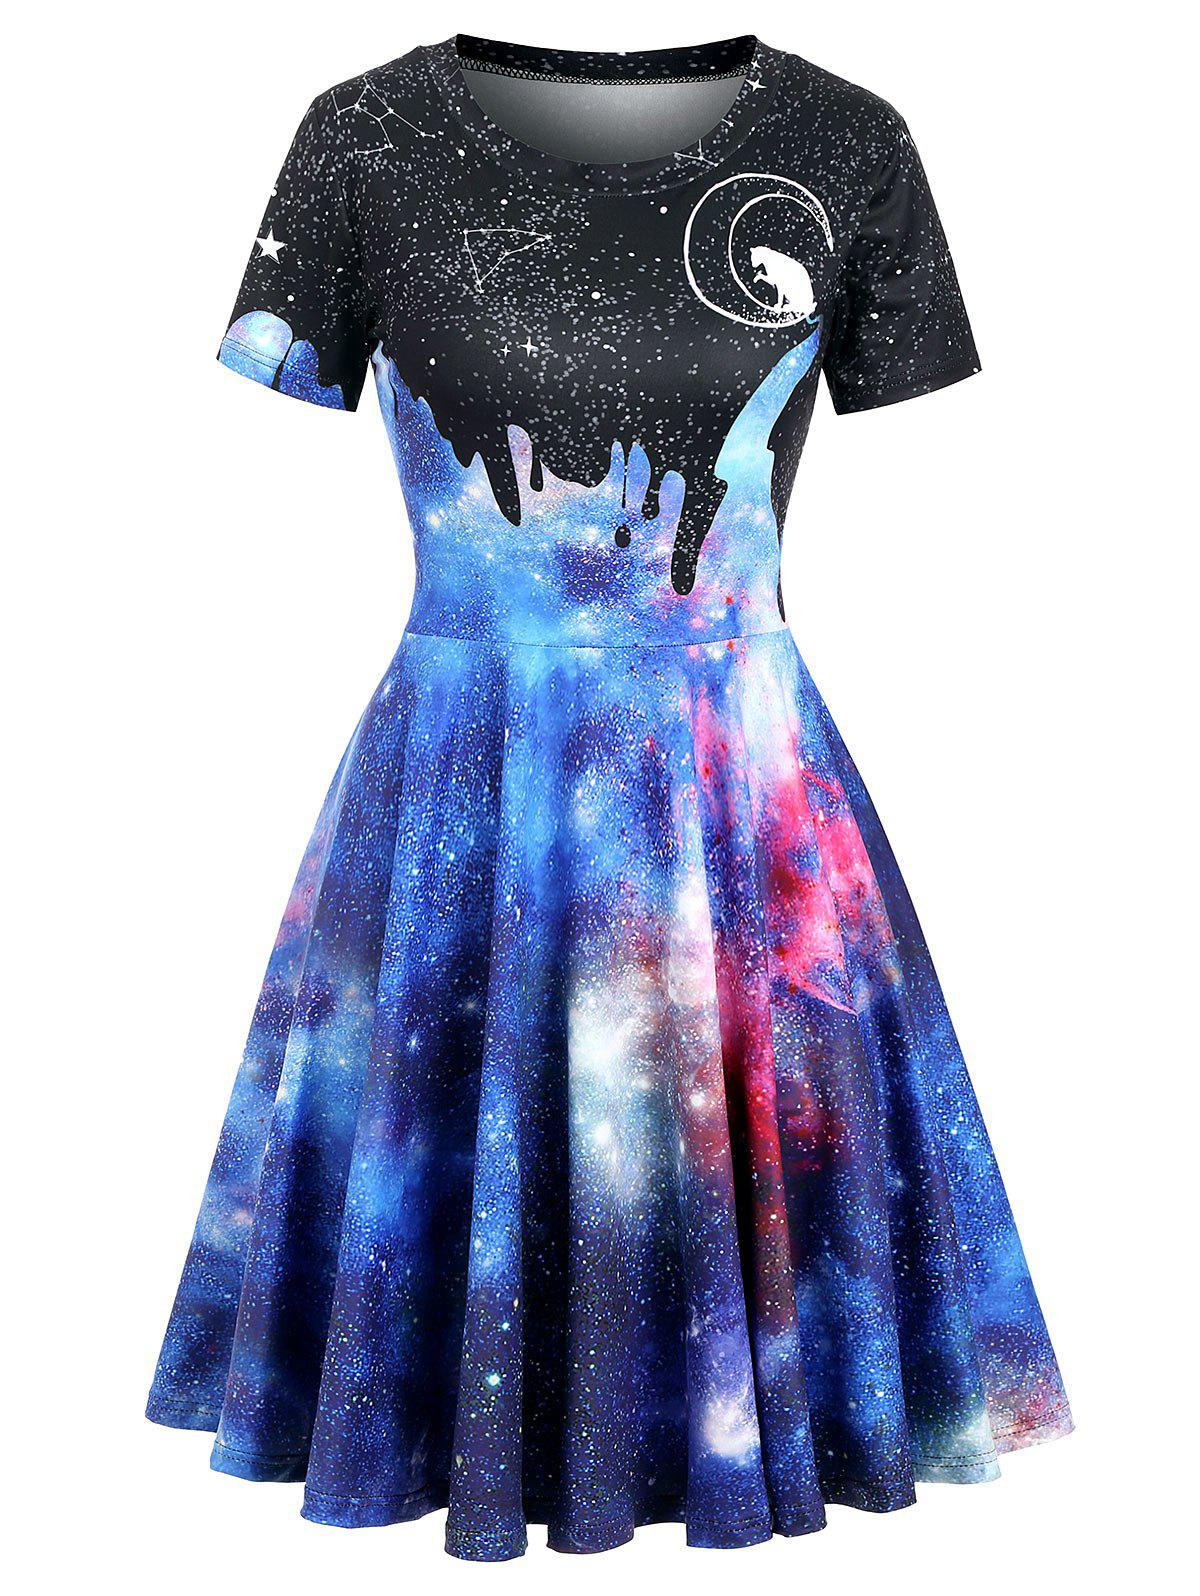 Cat Moon Galaxy Print Short Sleeve Dress - multicolor C XL